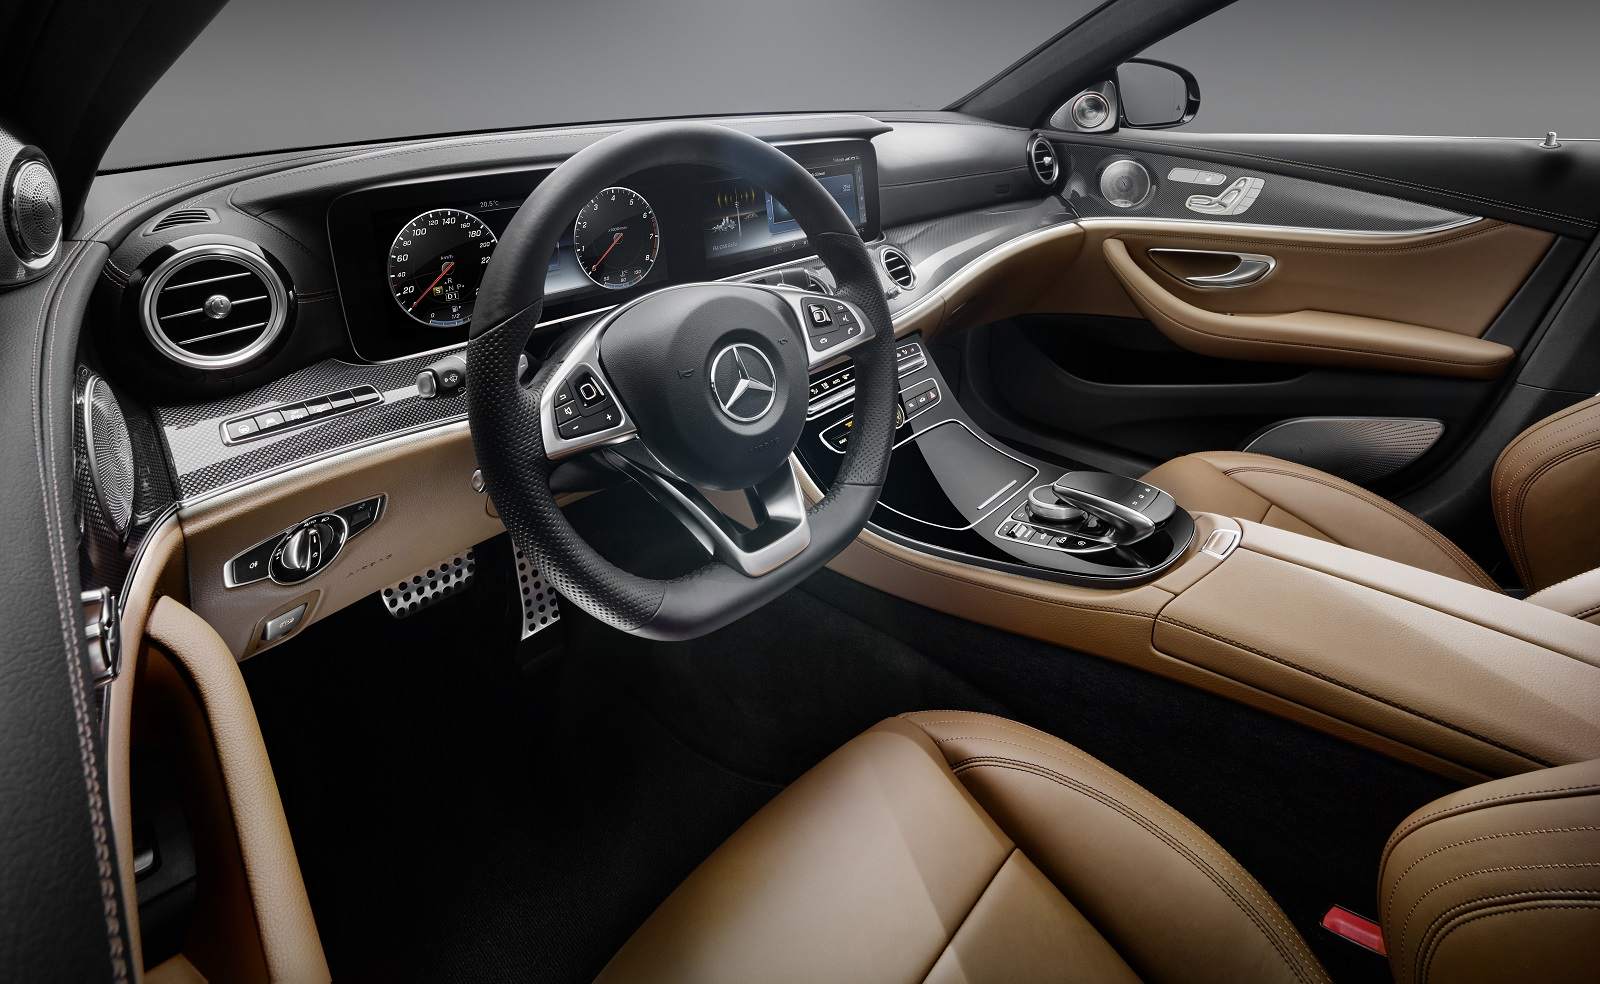 2017 Mercedes Benz E Class Interior Revealed All Glass Dash Display